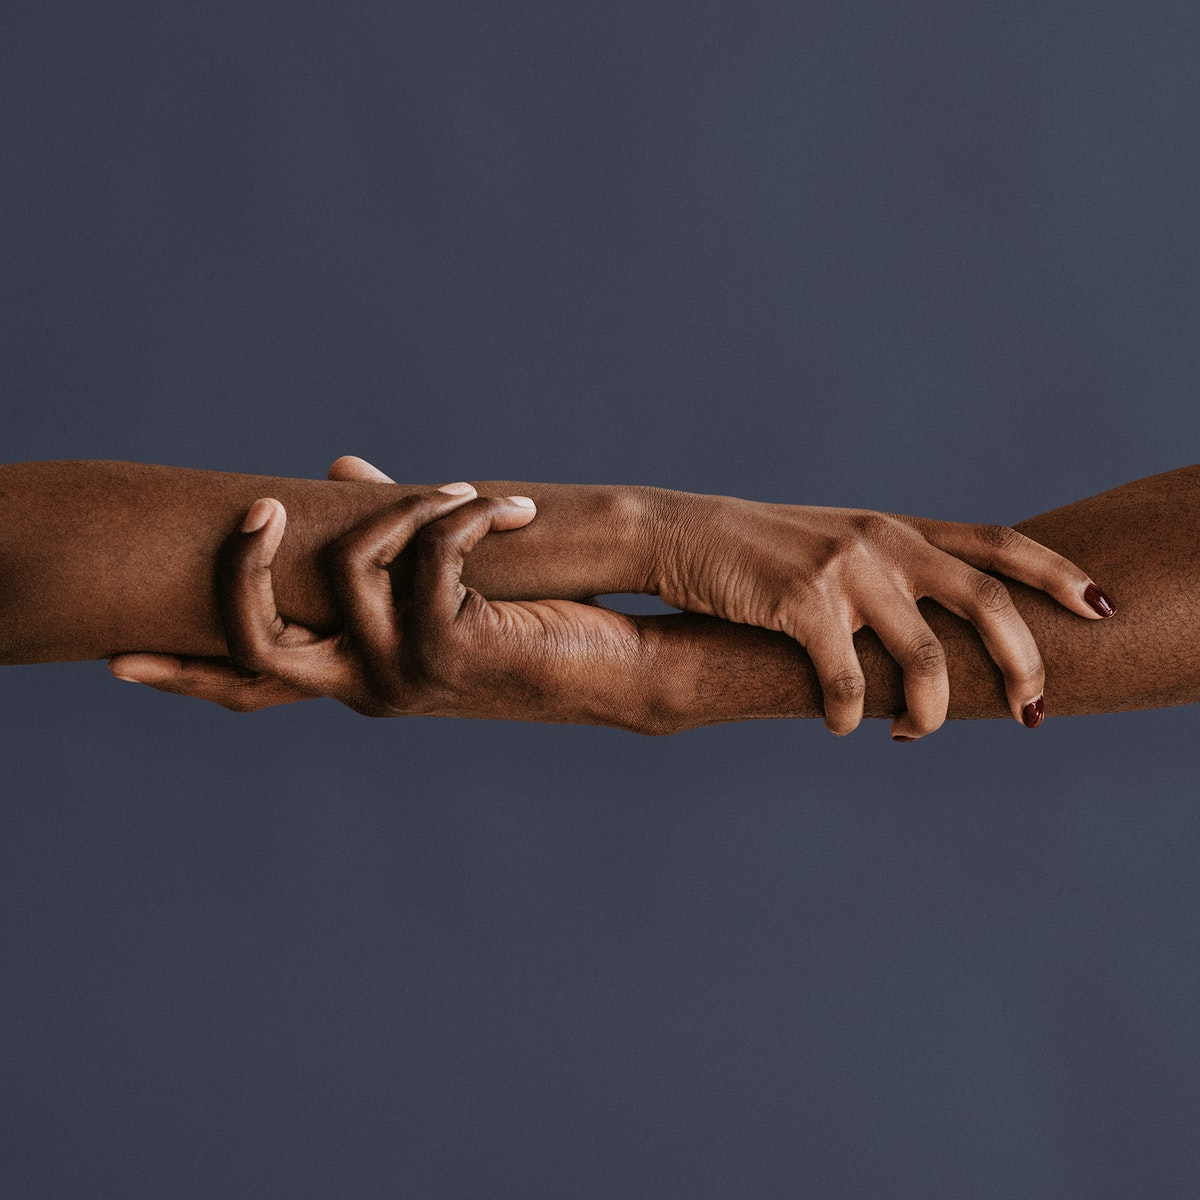 Black lovers holding each others hands